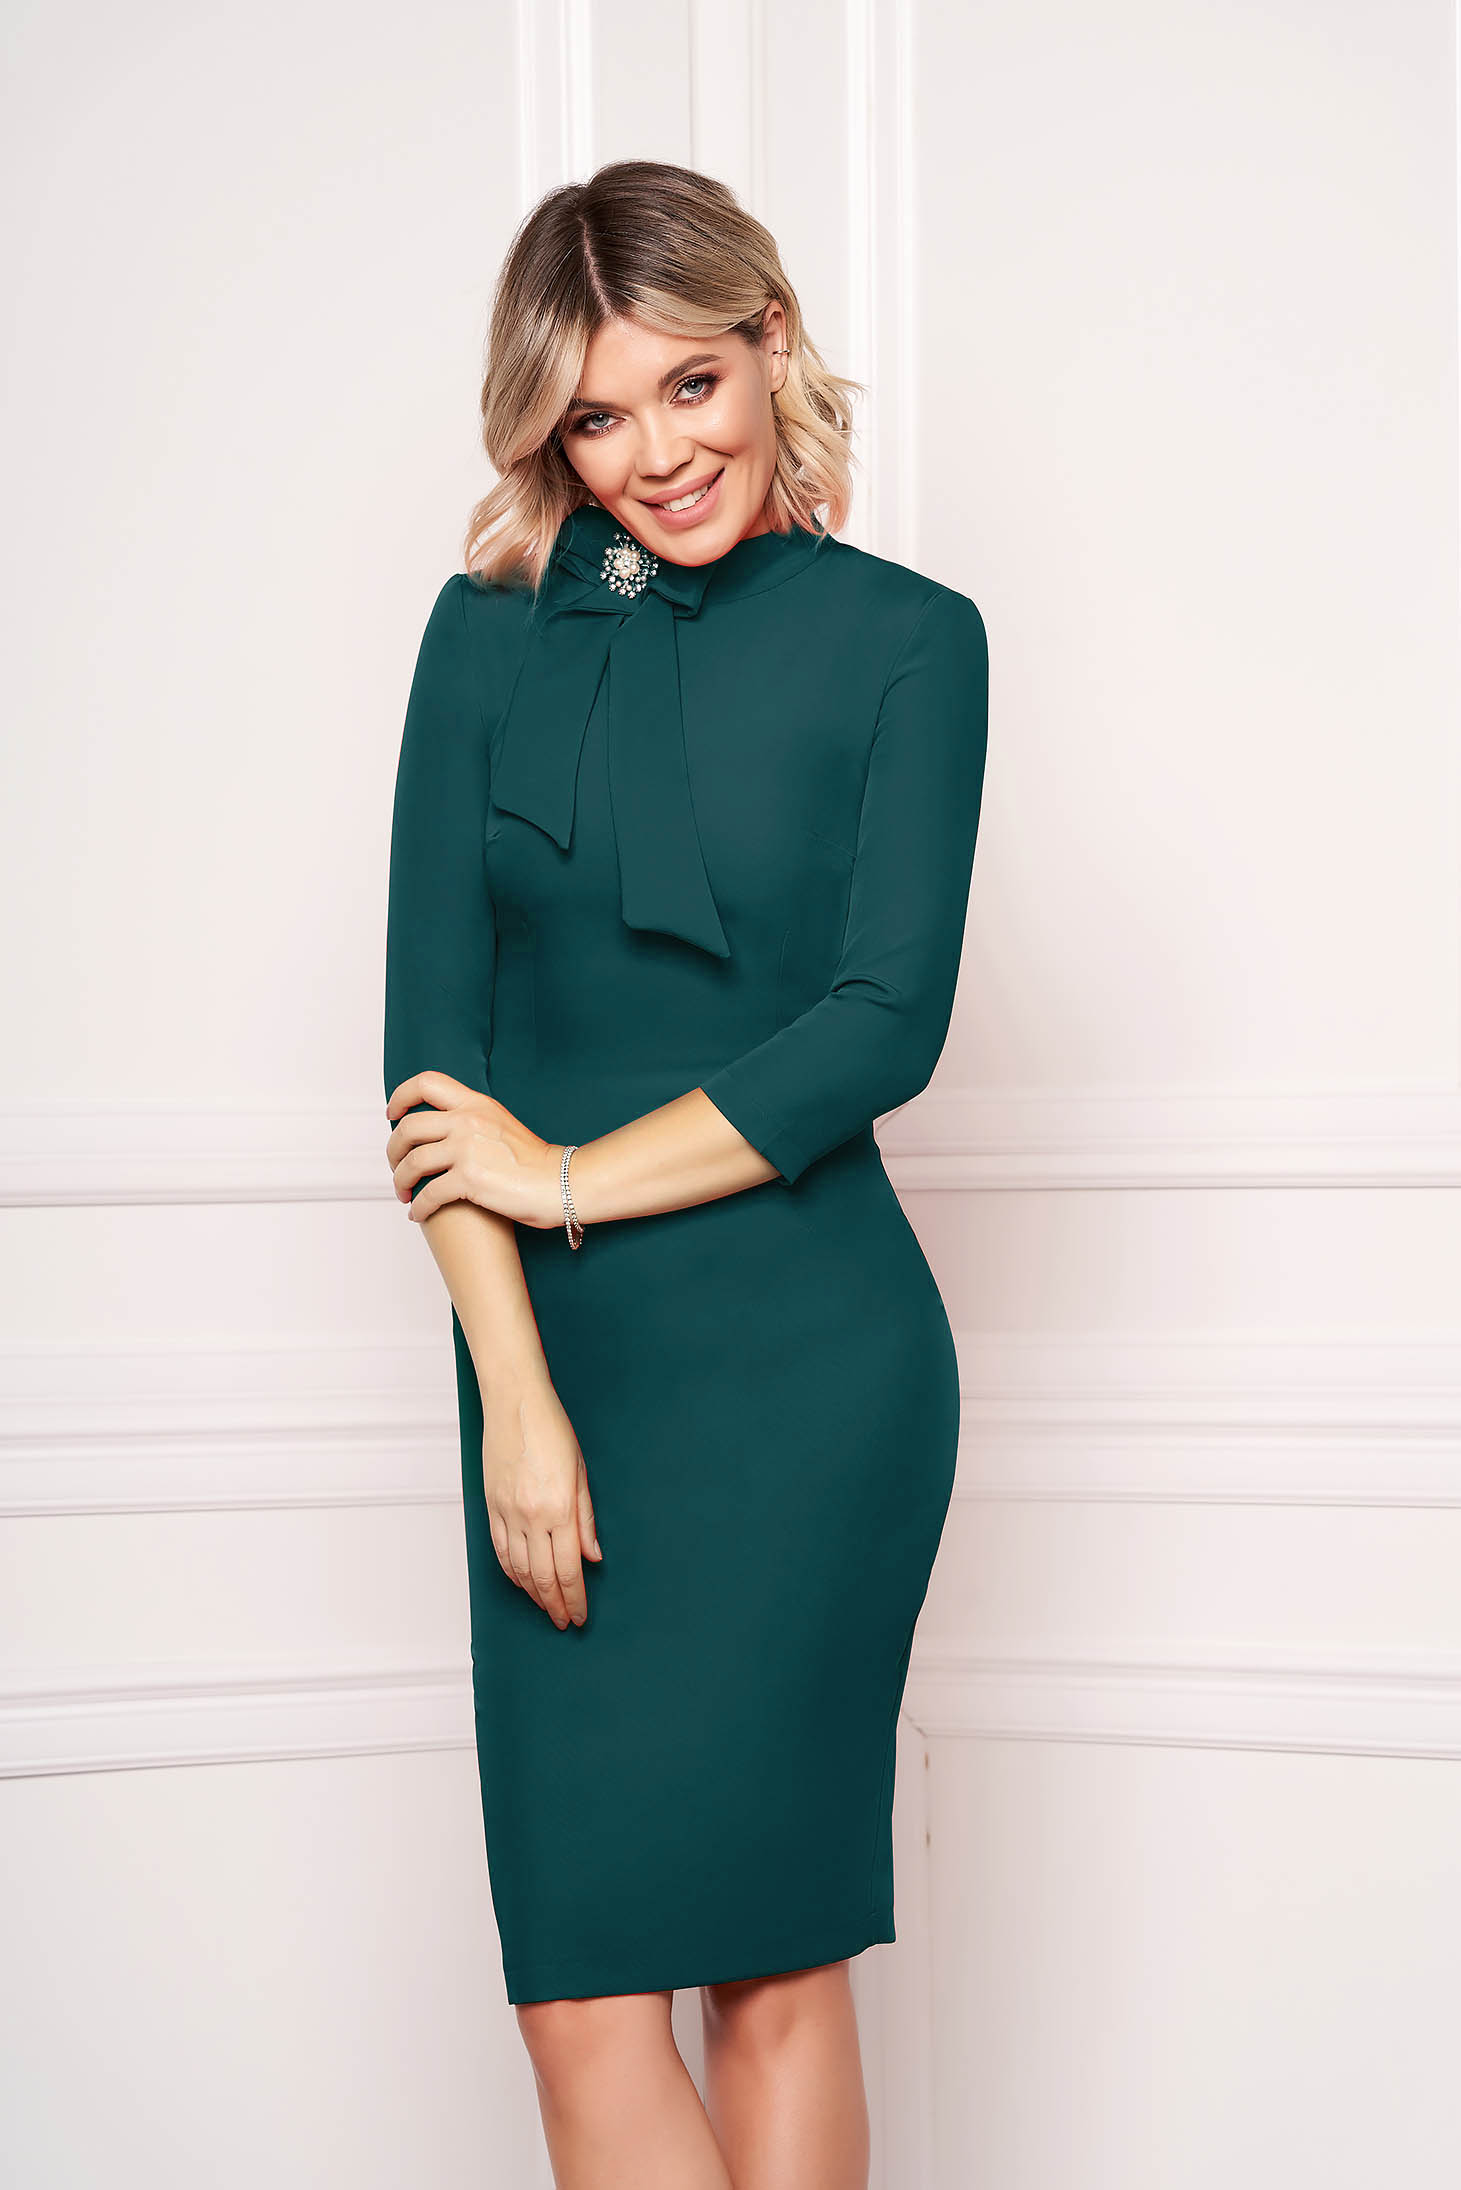 StarShinerS dirty green dress elegant office midi cloth slightly elastic fabric accessorized with breastpin